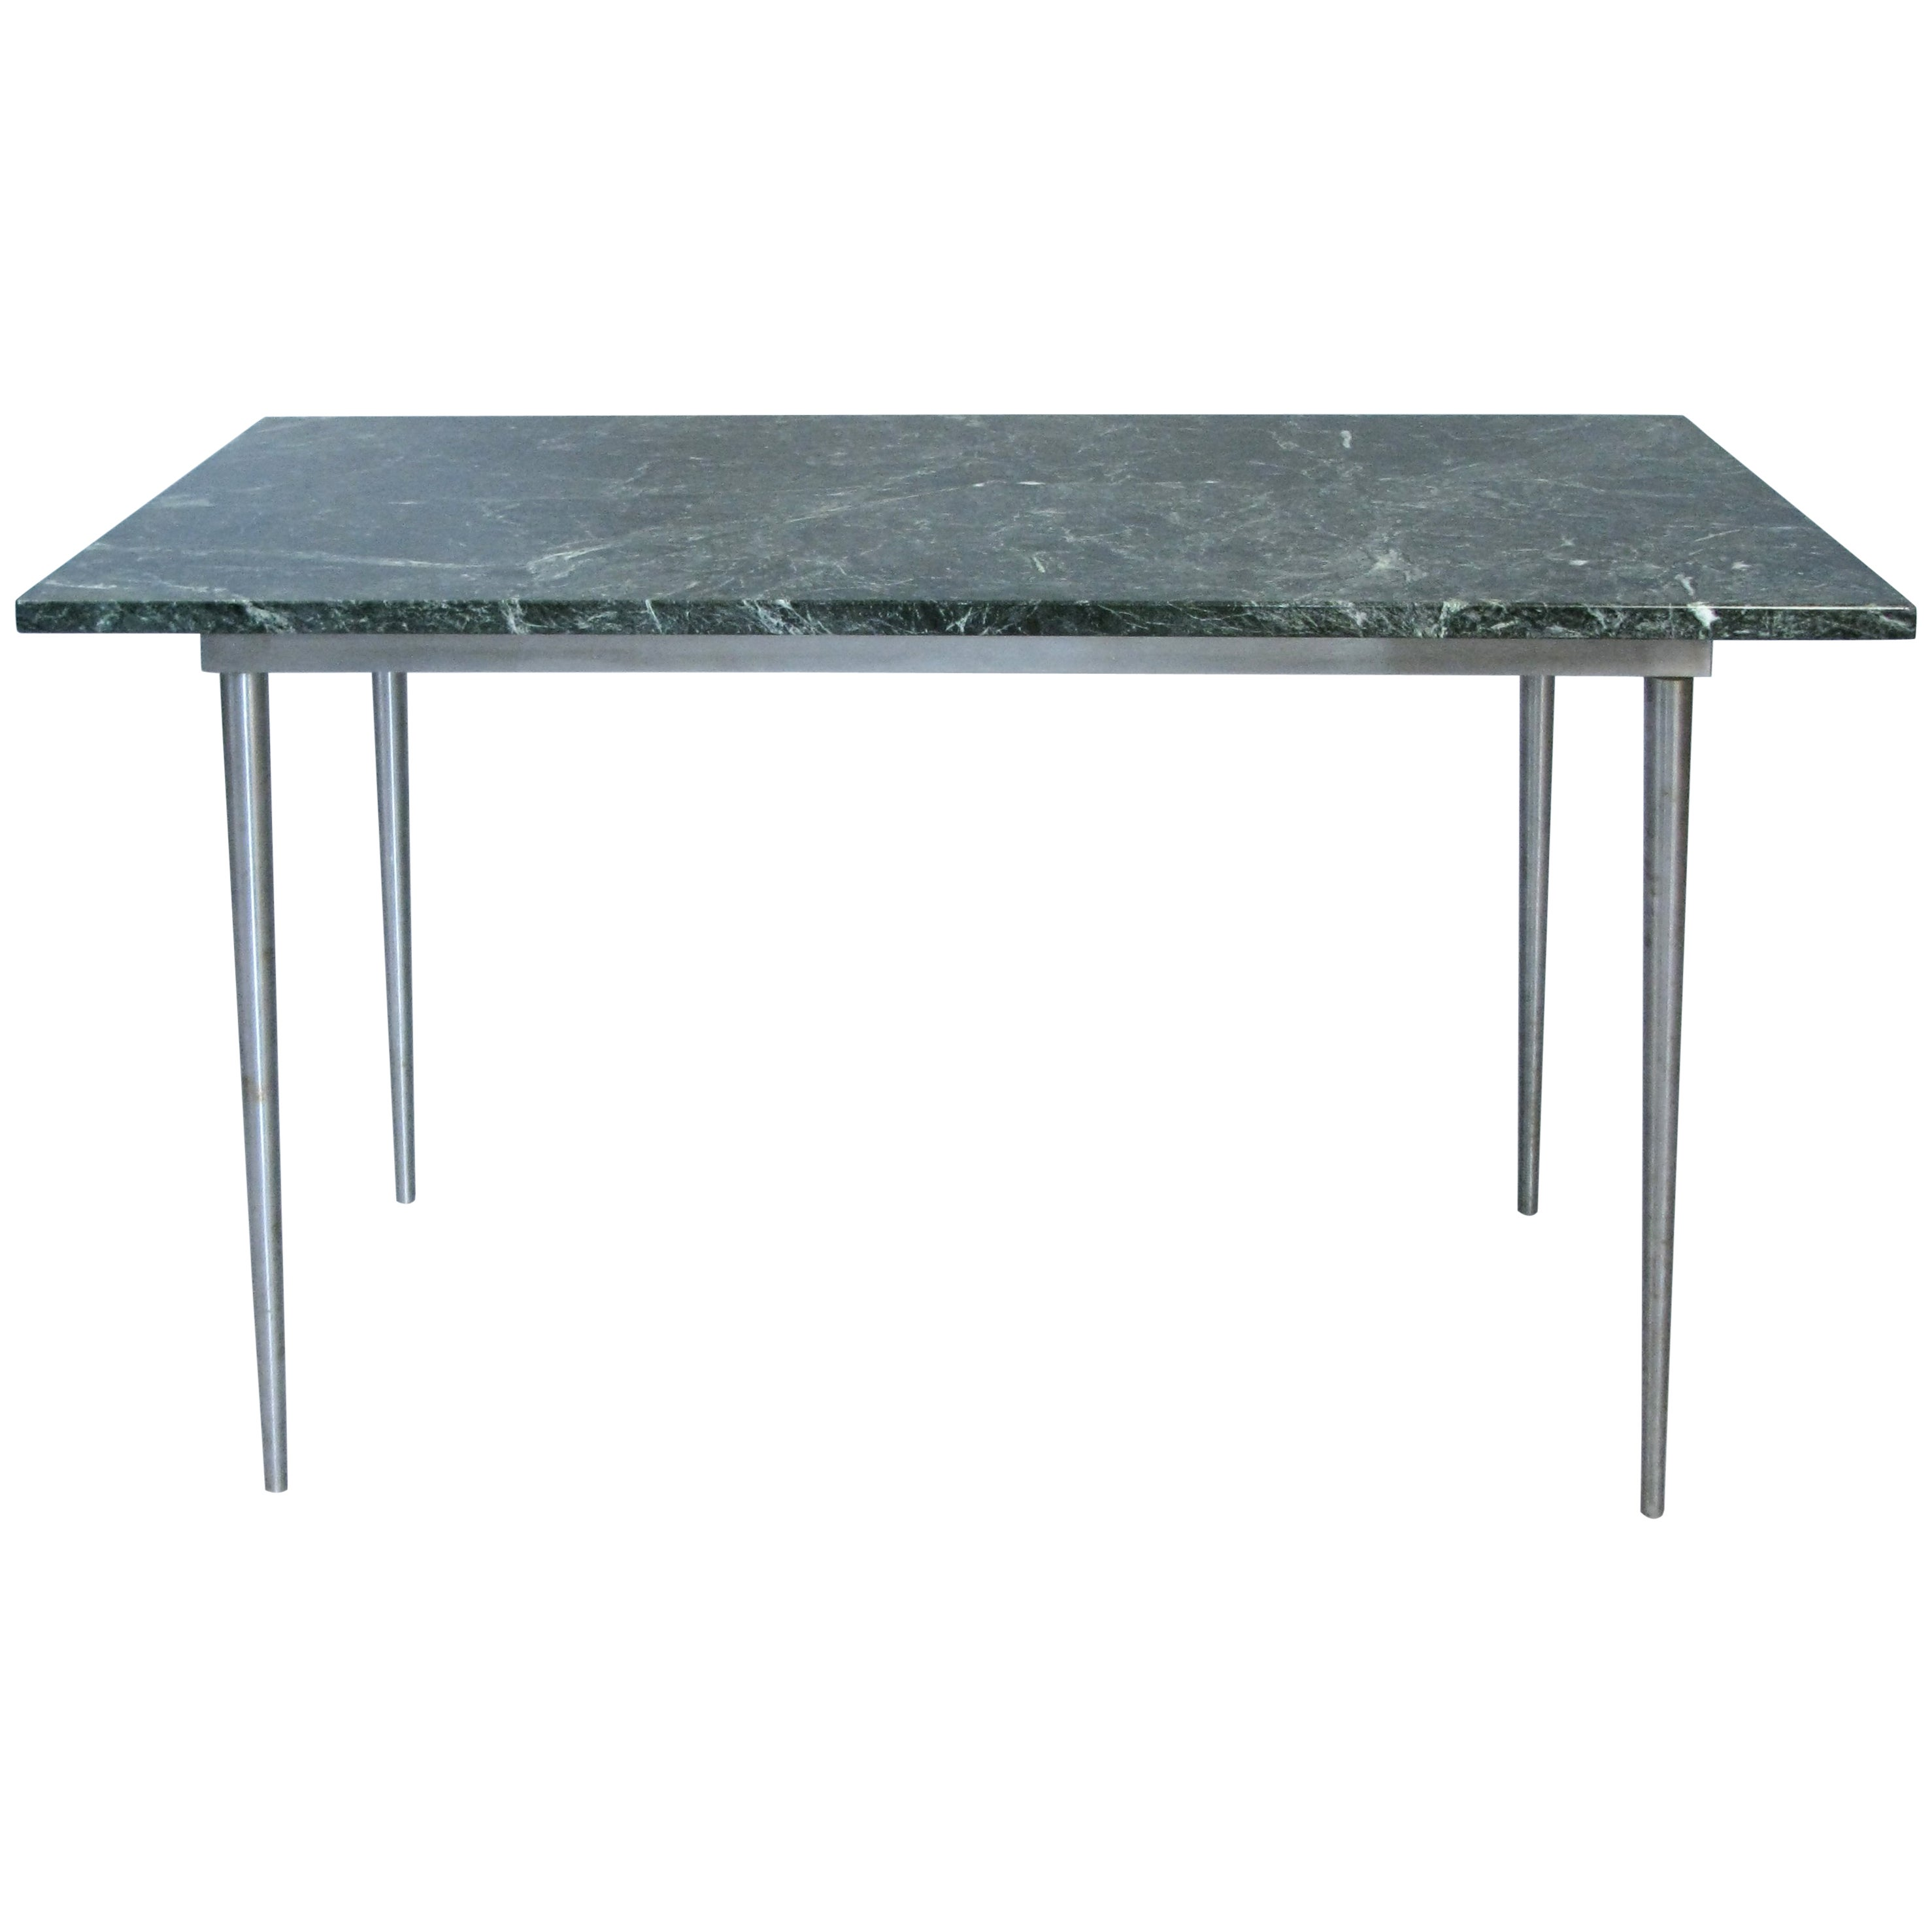 Vintage 1970s Steel and Marble Table